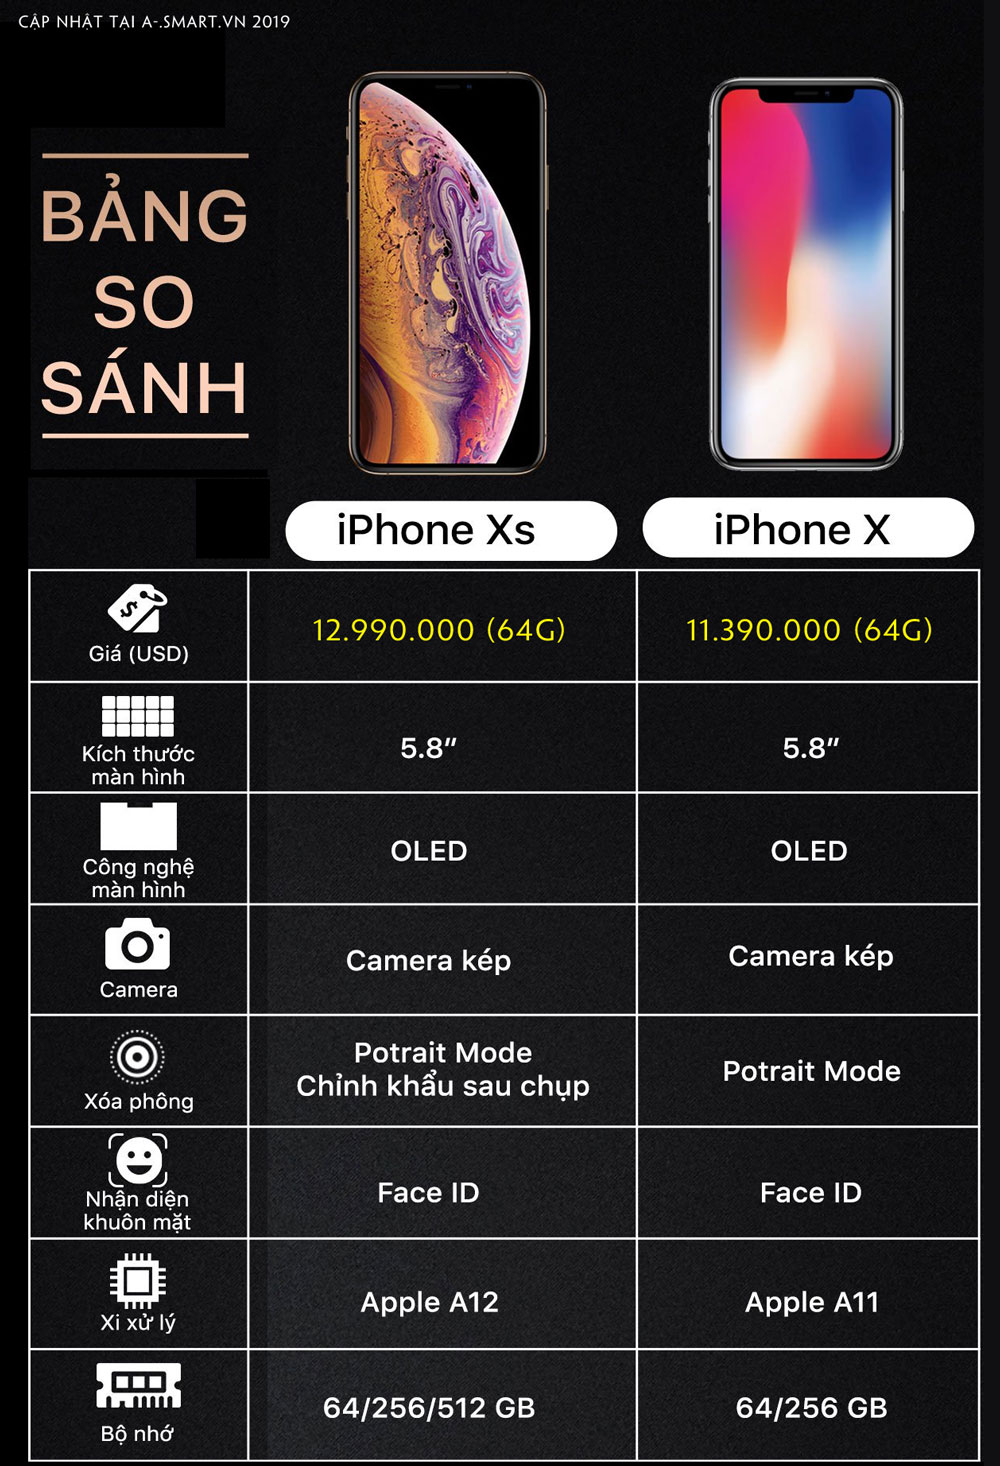 bang-so-sanh-cau-hinh-cua-iphone-x-va-iphone-xs-1